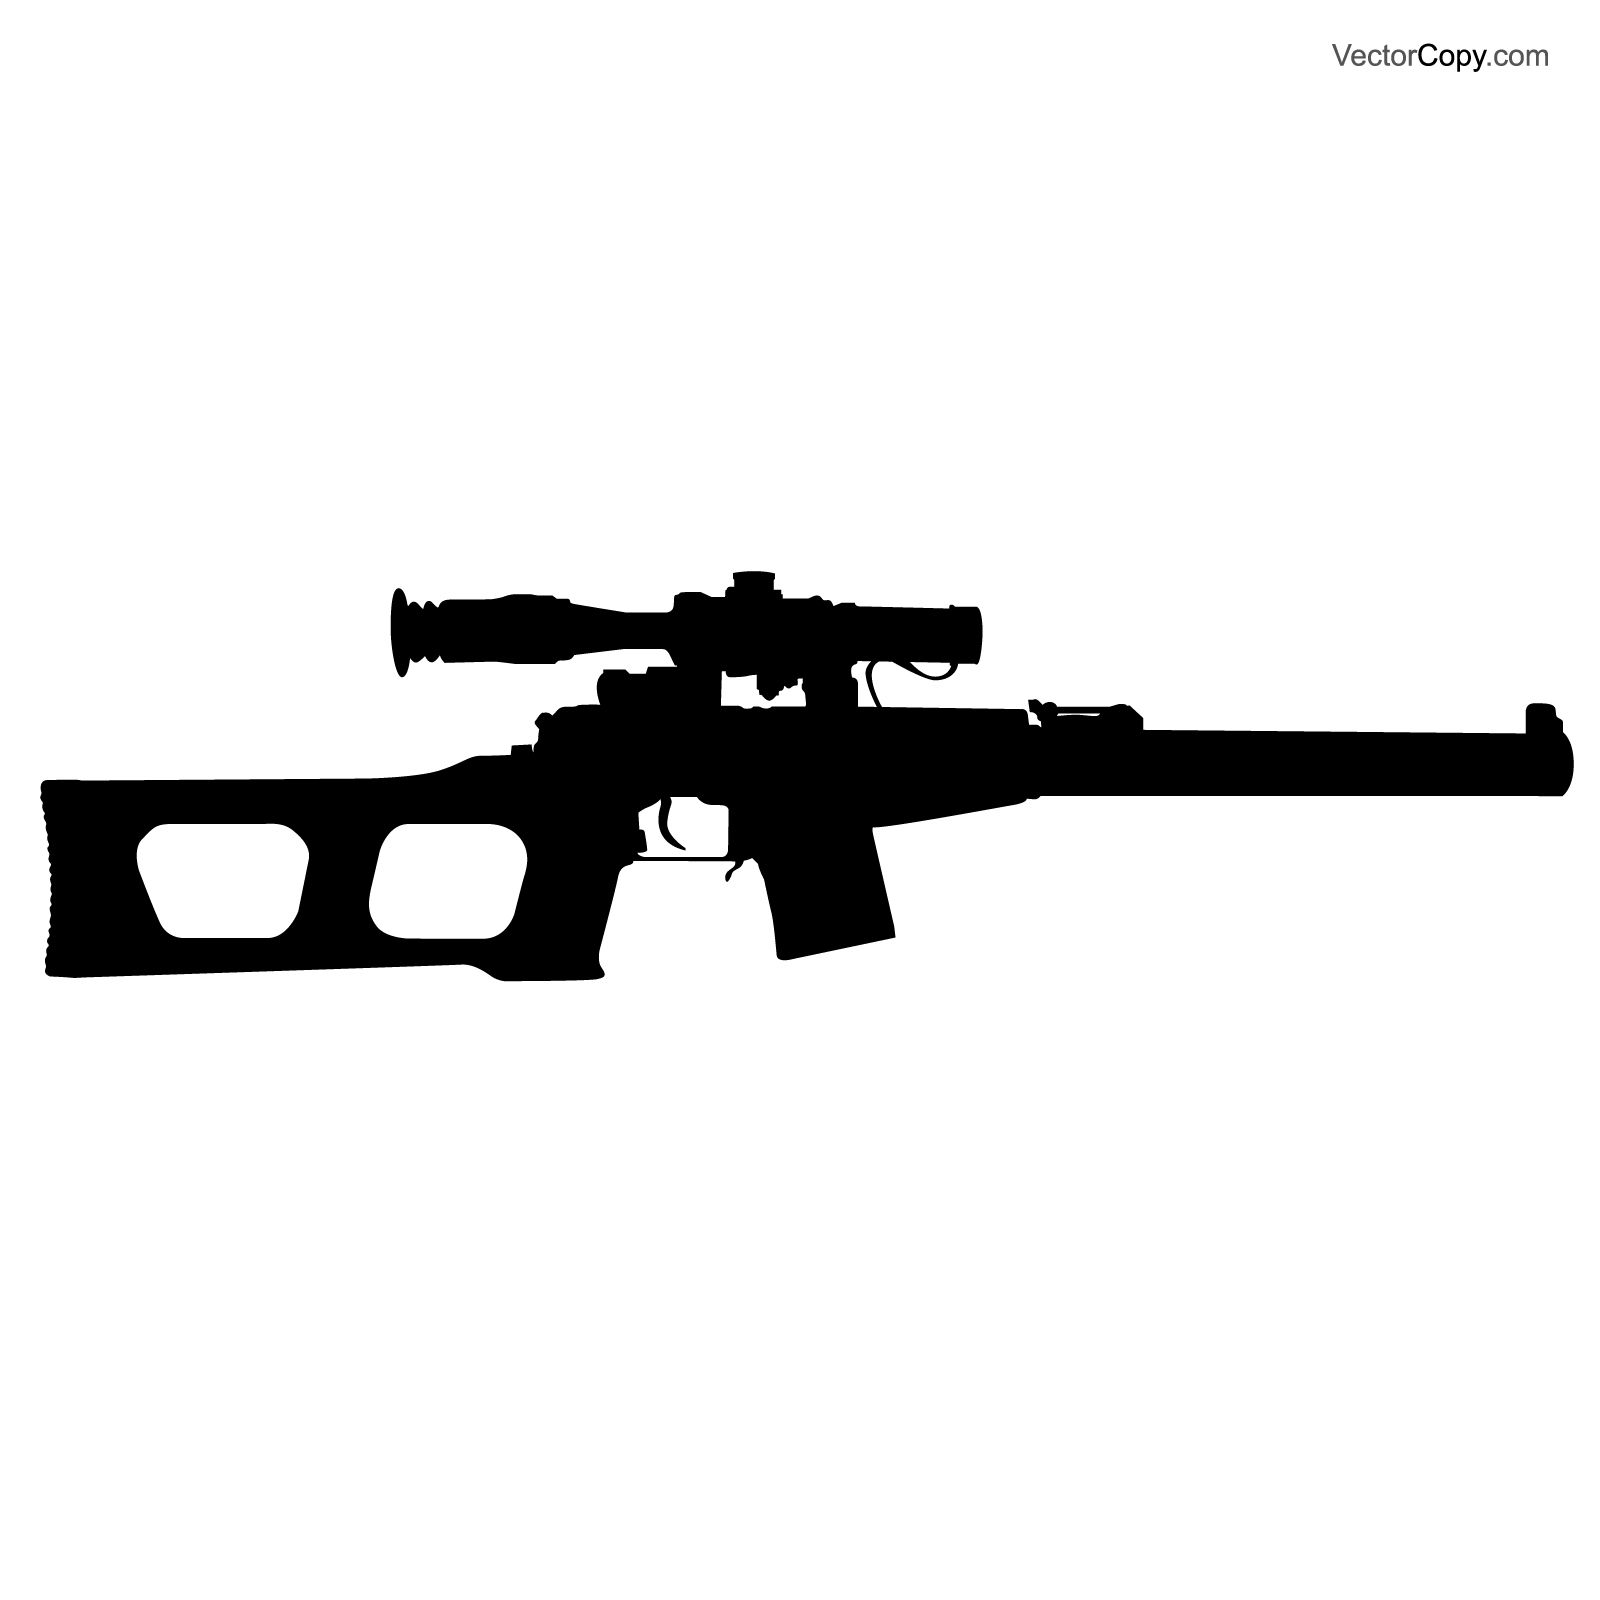 Battle rifle clipart image transparent download Silhouette of USSR sniper rifle, free vector | Silhouettes | Vector ... image transparent download